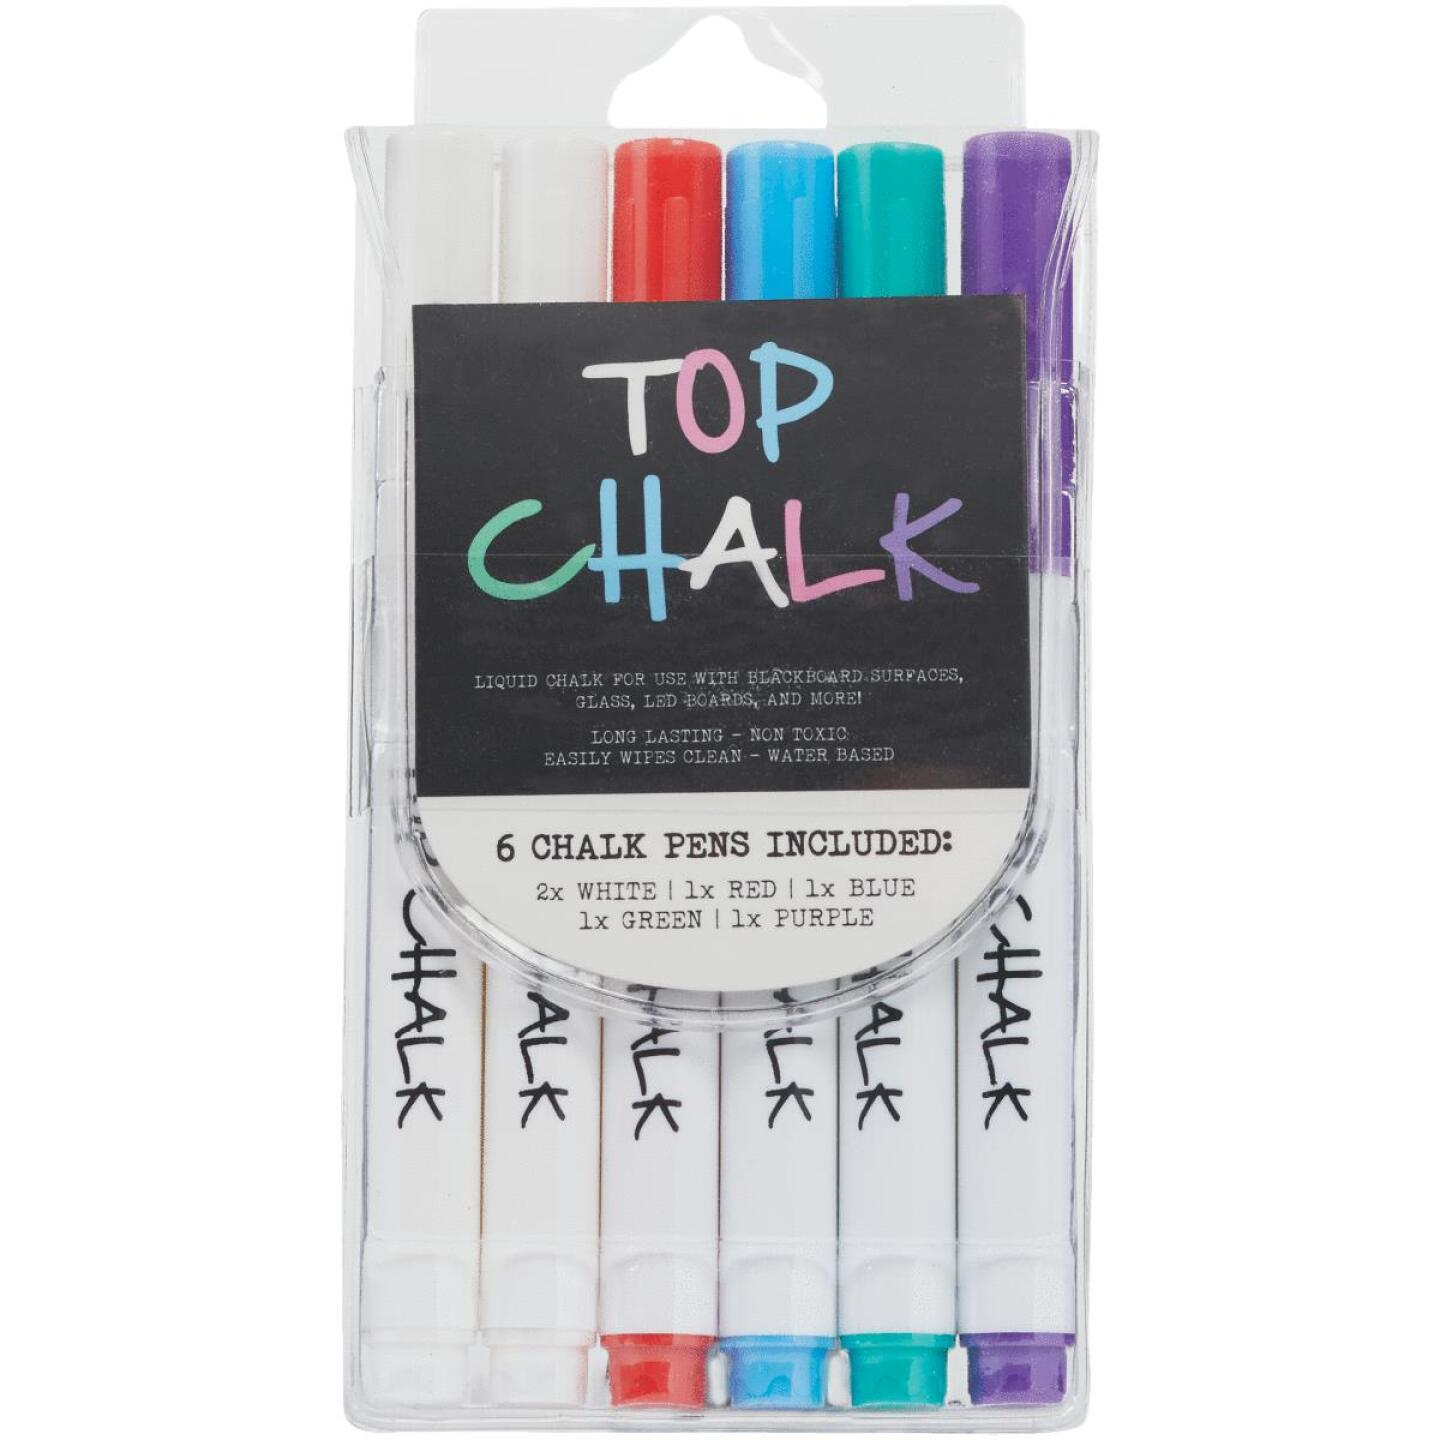 Masontops Liquid Chalk for Canning Lids (6-Count) Image 2